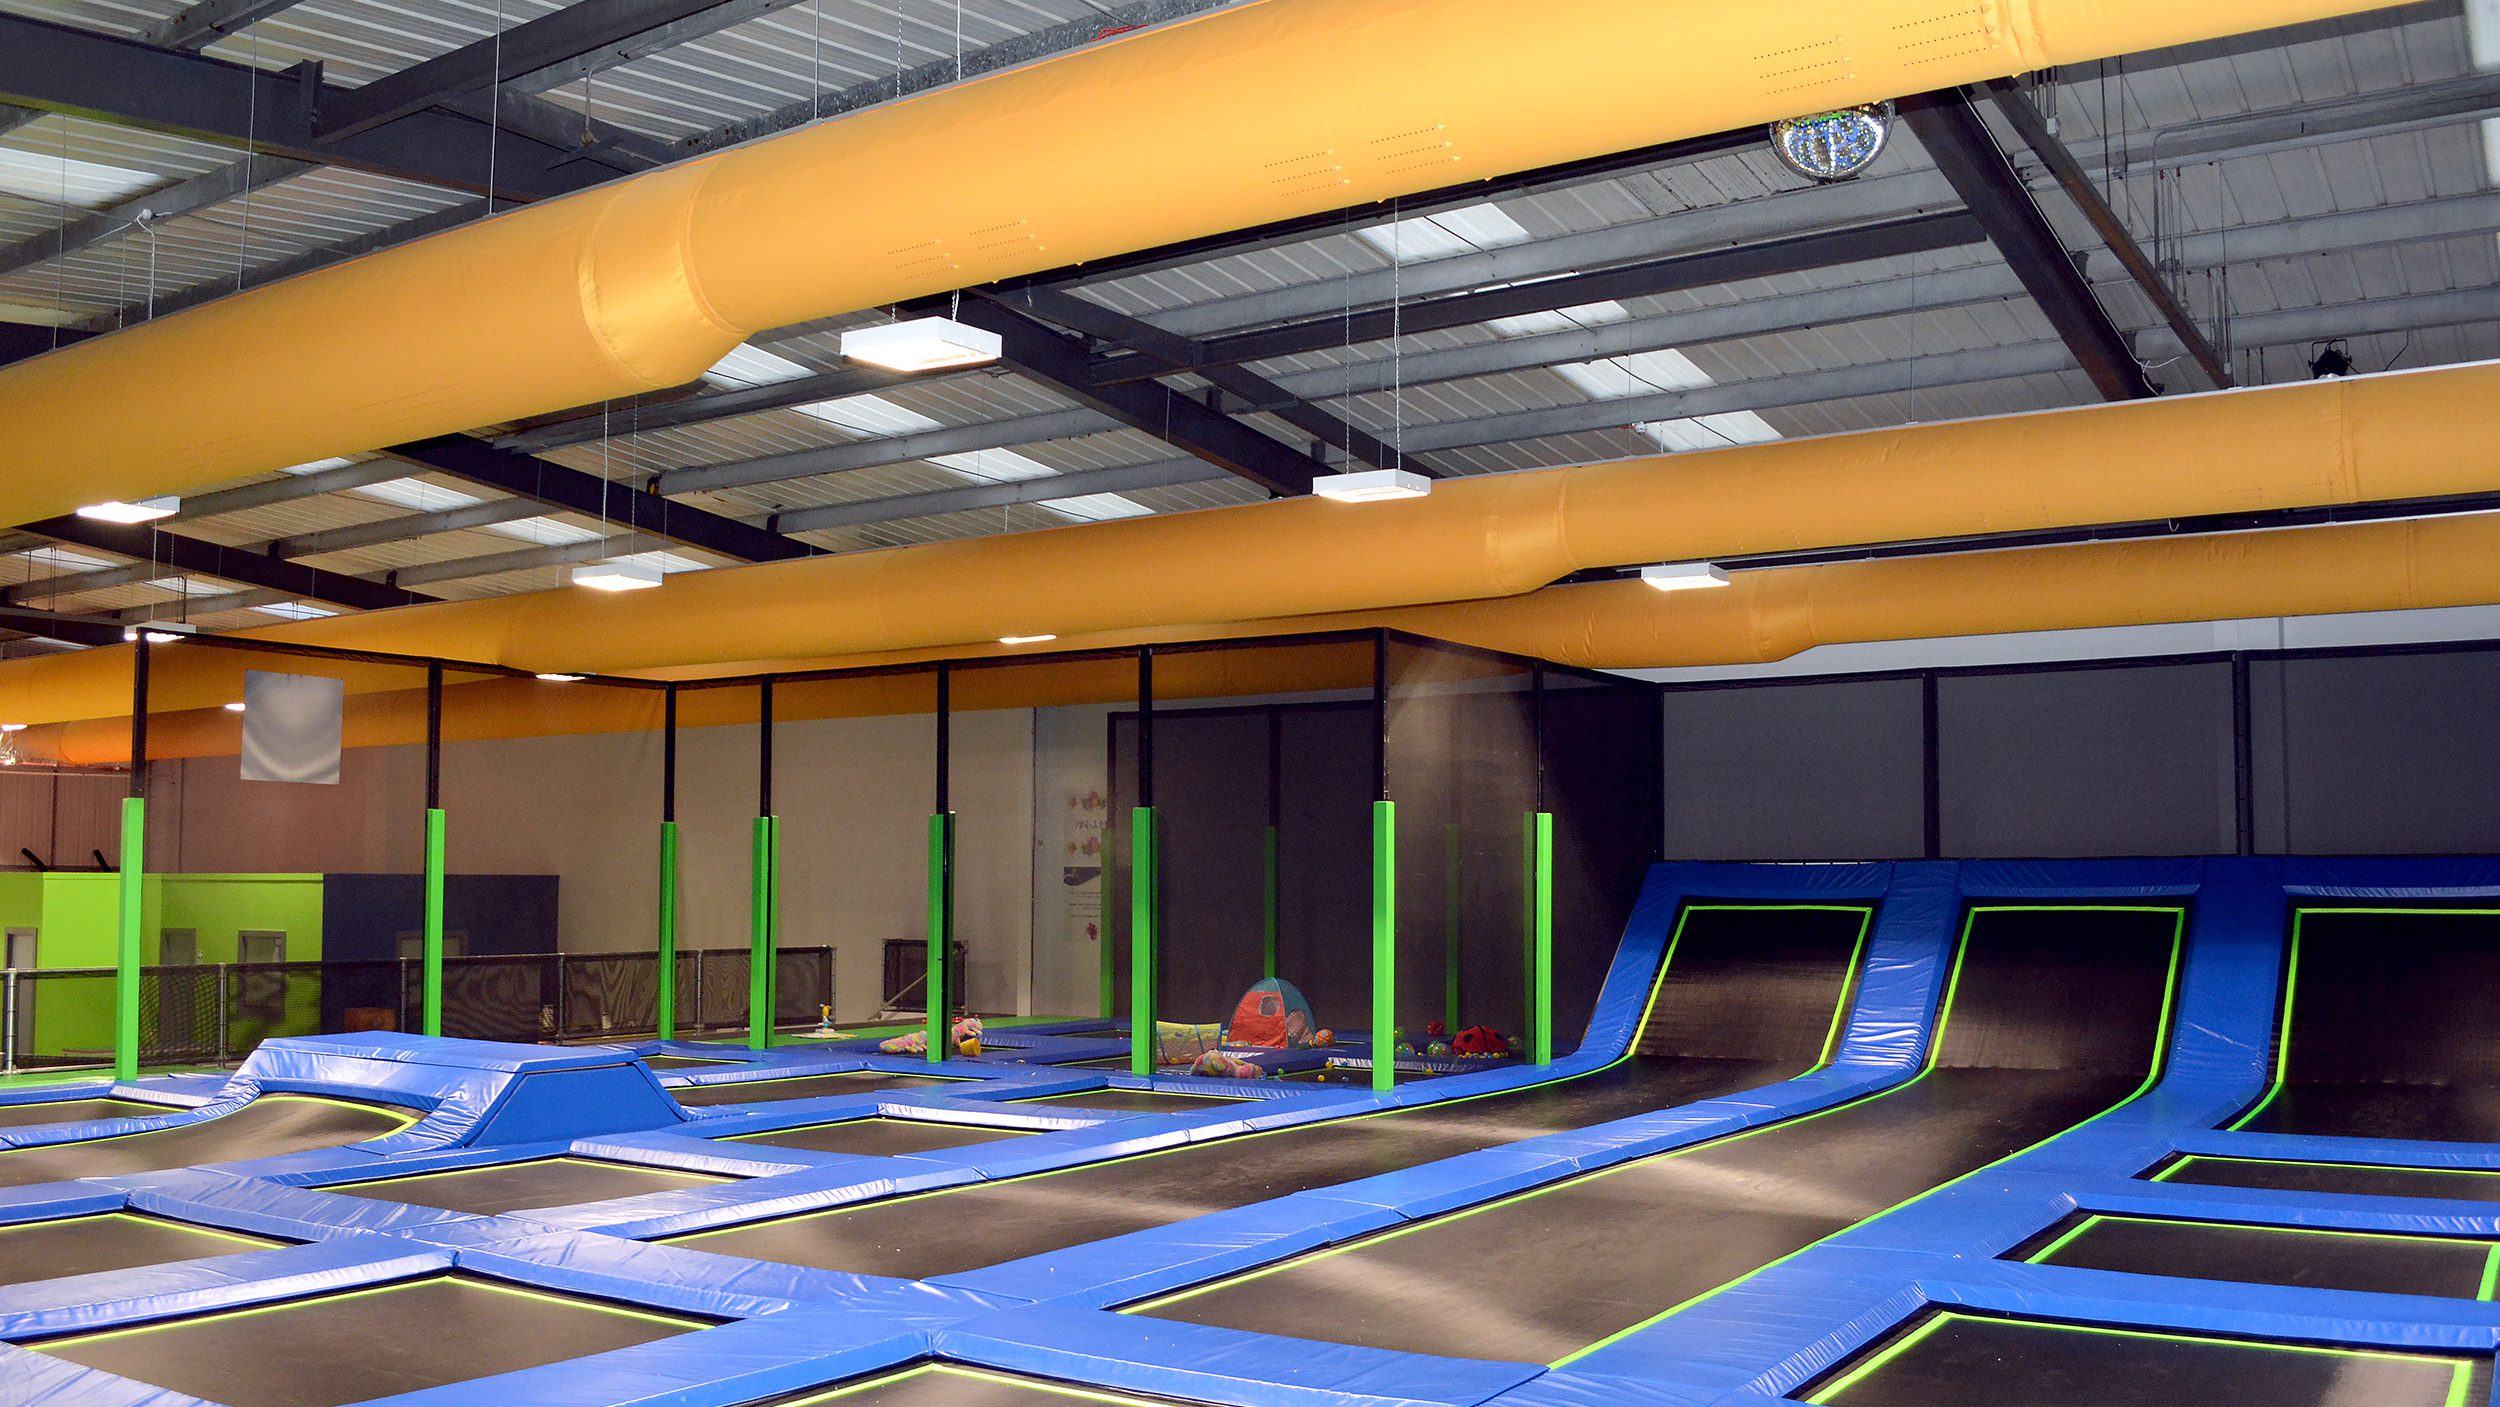 Fabric ducting in a trampoline park